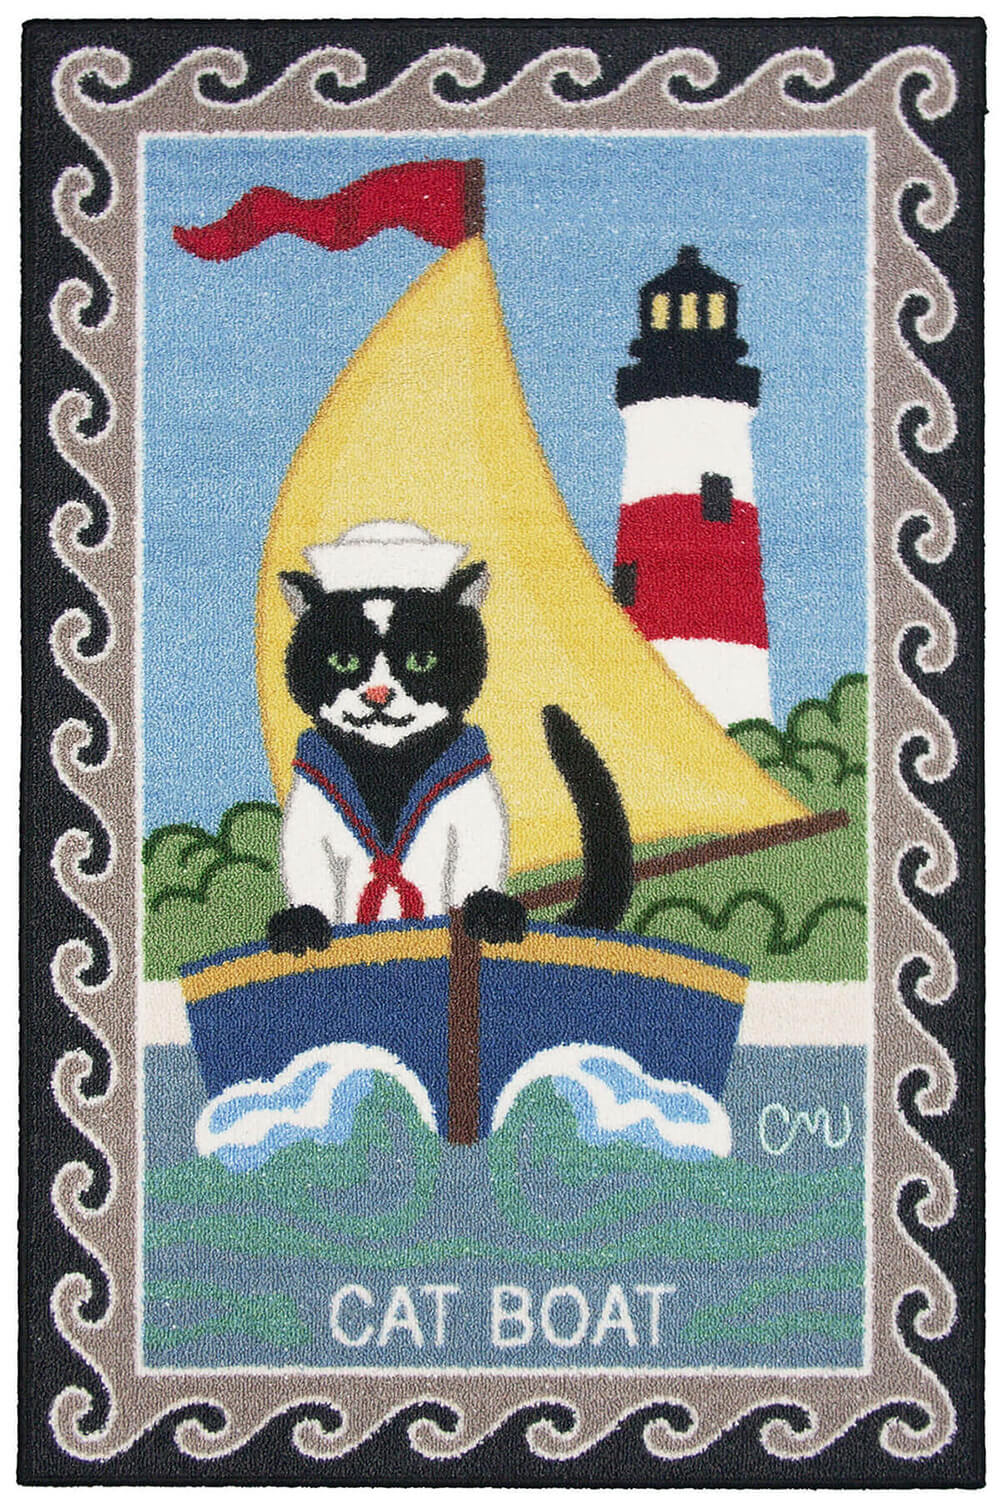 Nantucket Cat Boat Washable Runner 1126